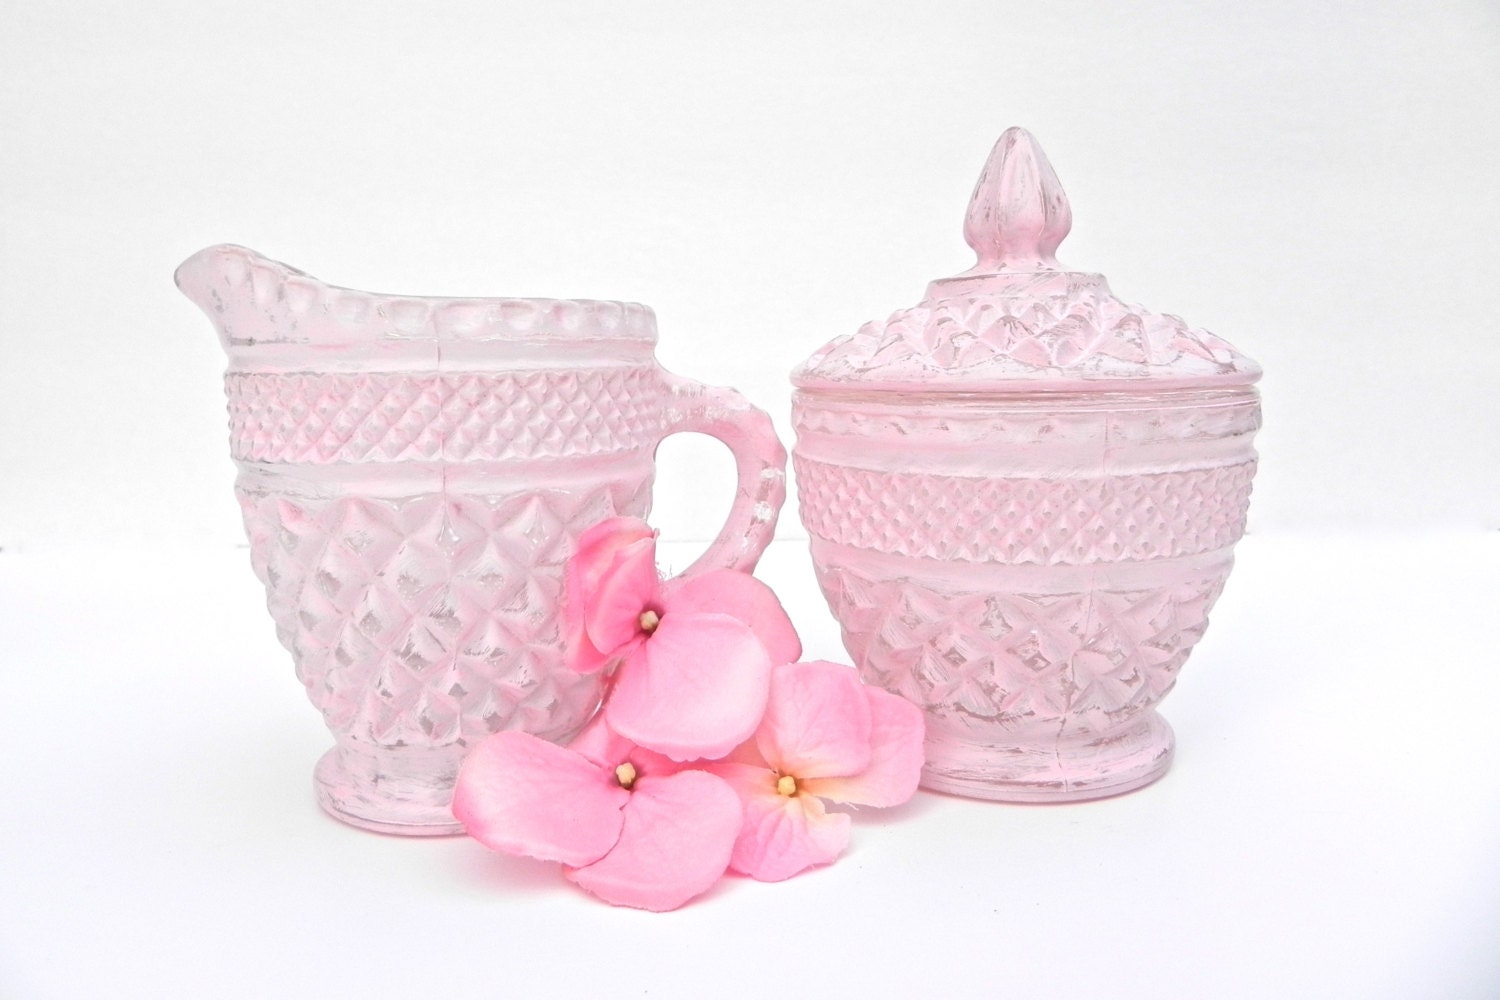 Shabby Chic Pink Sugar and Creamer Set, Glass Painted Sugar Creamer Set - GlassCastle2